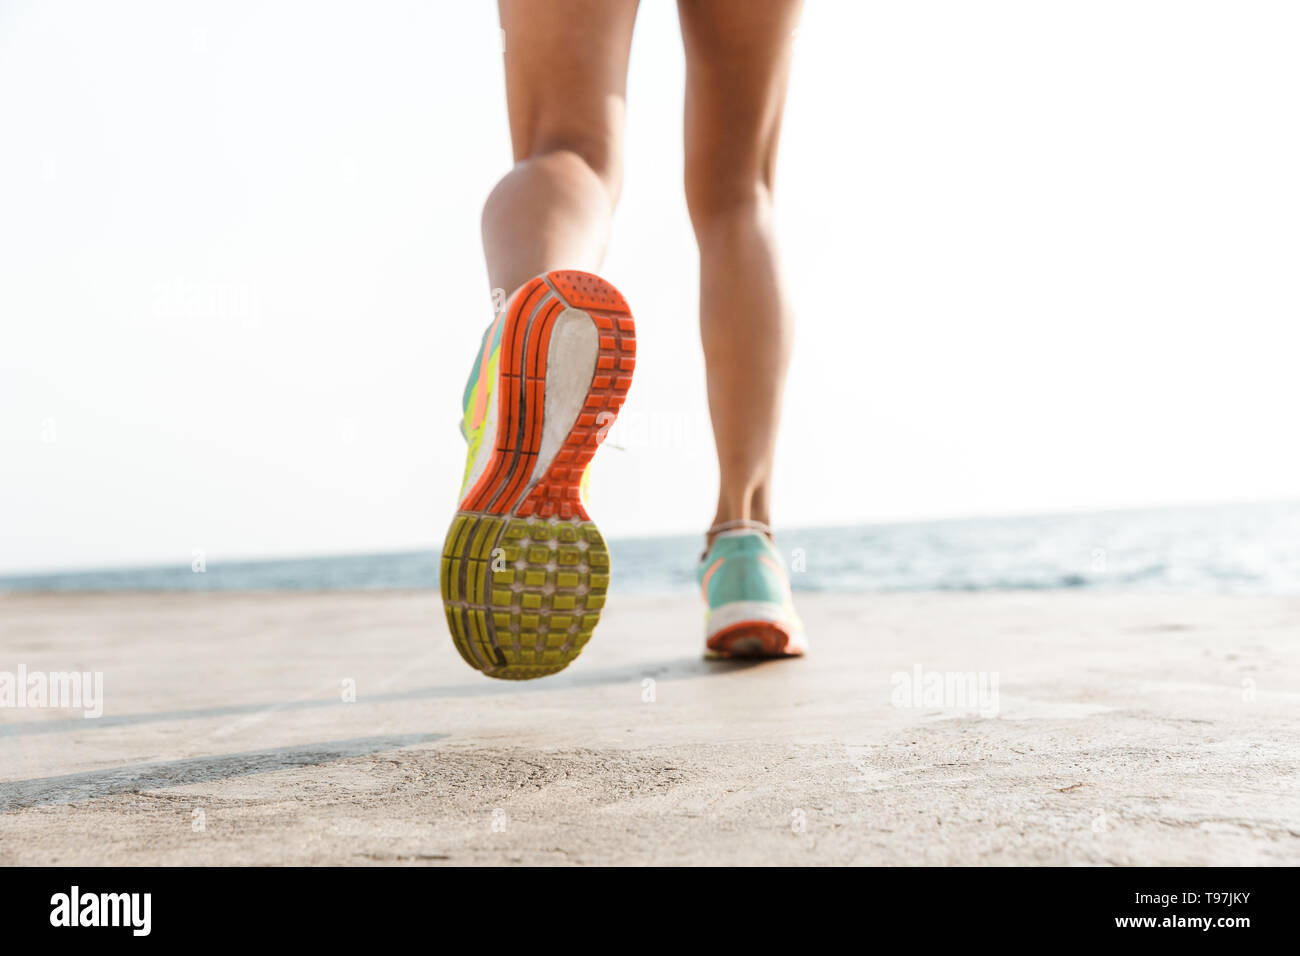 Back view of women's legs running along the beach - Stock Image